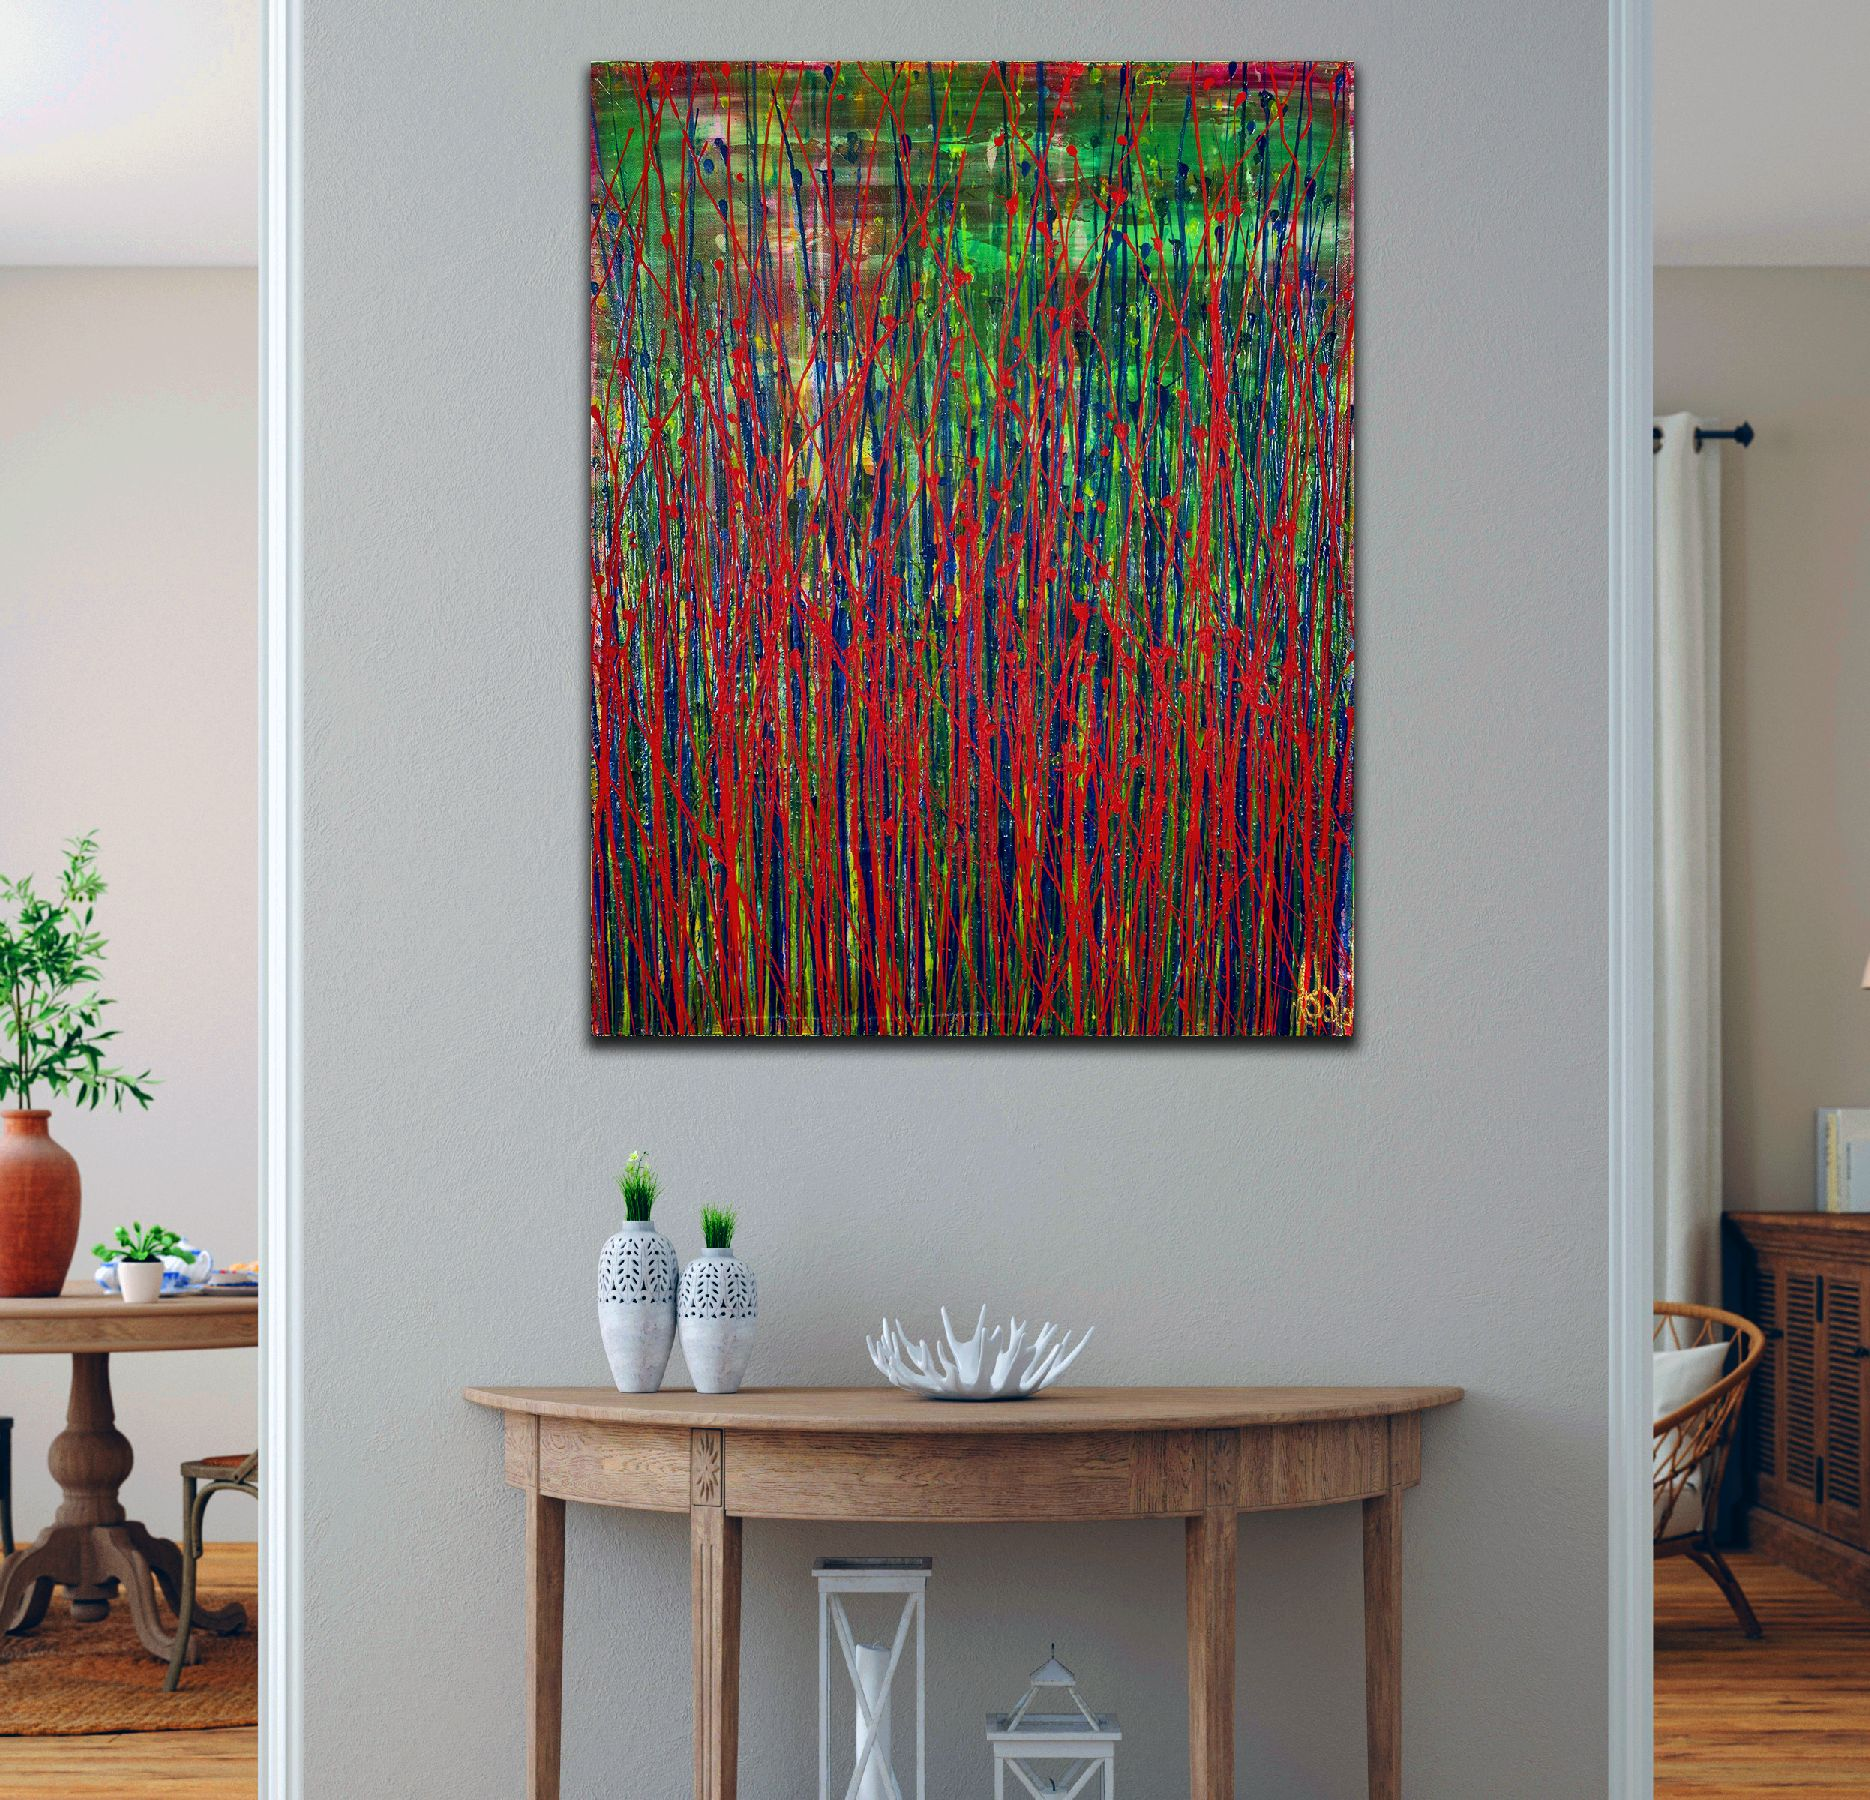 Room example - Like Nothing Else (Experimental Garden) (2021) 22x18 inches by Nestor Toro